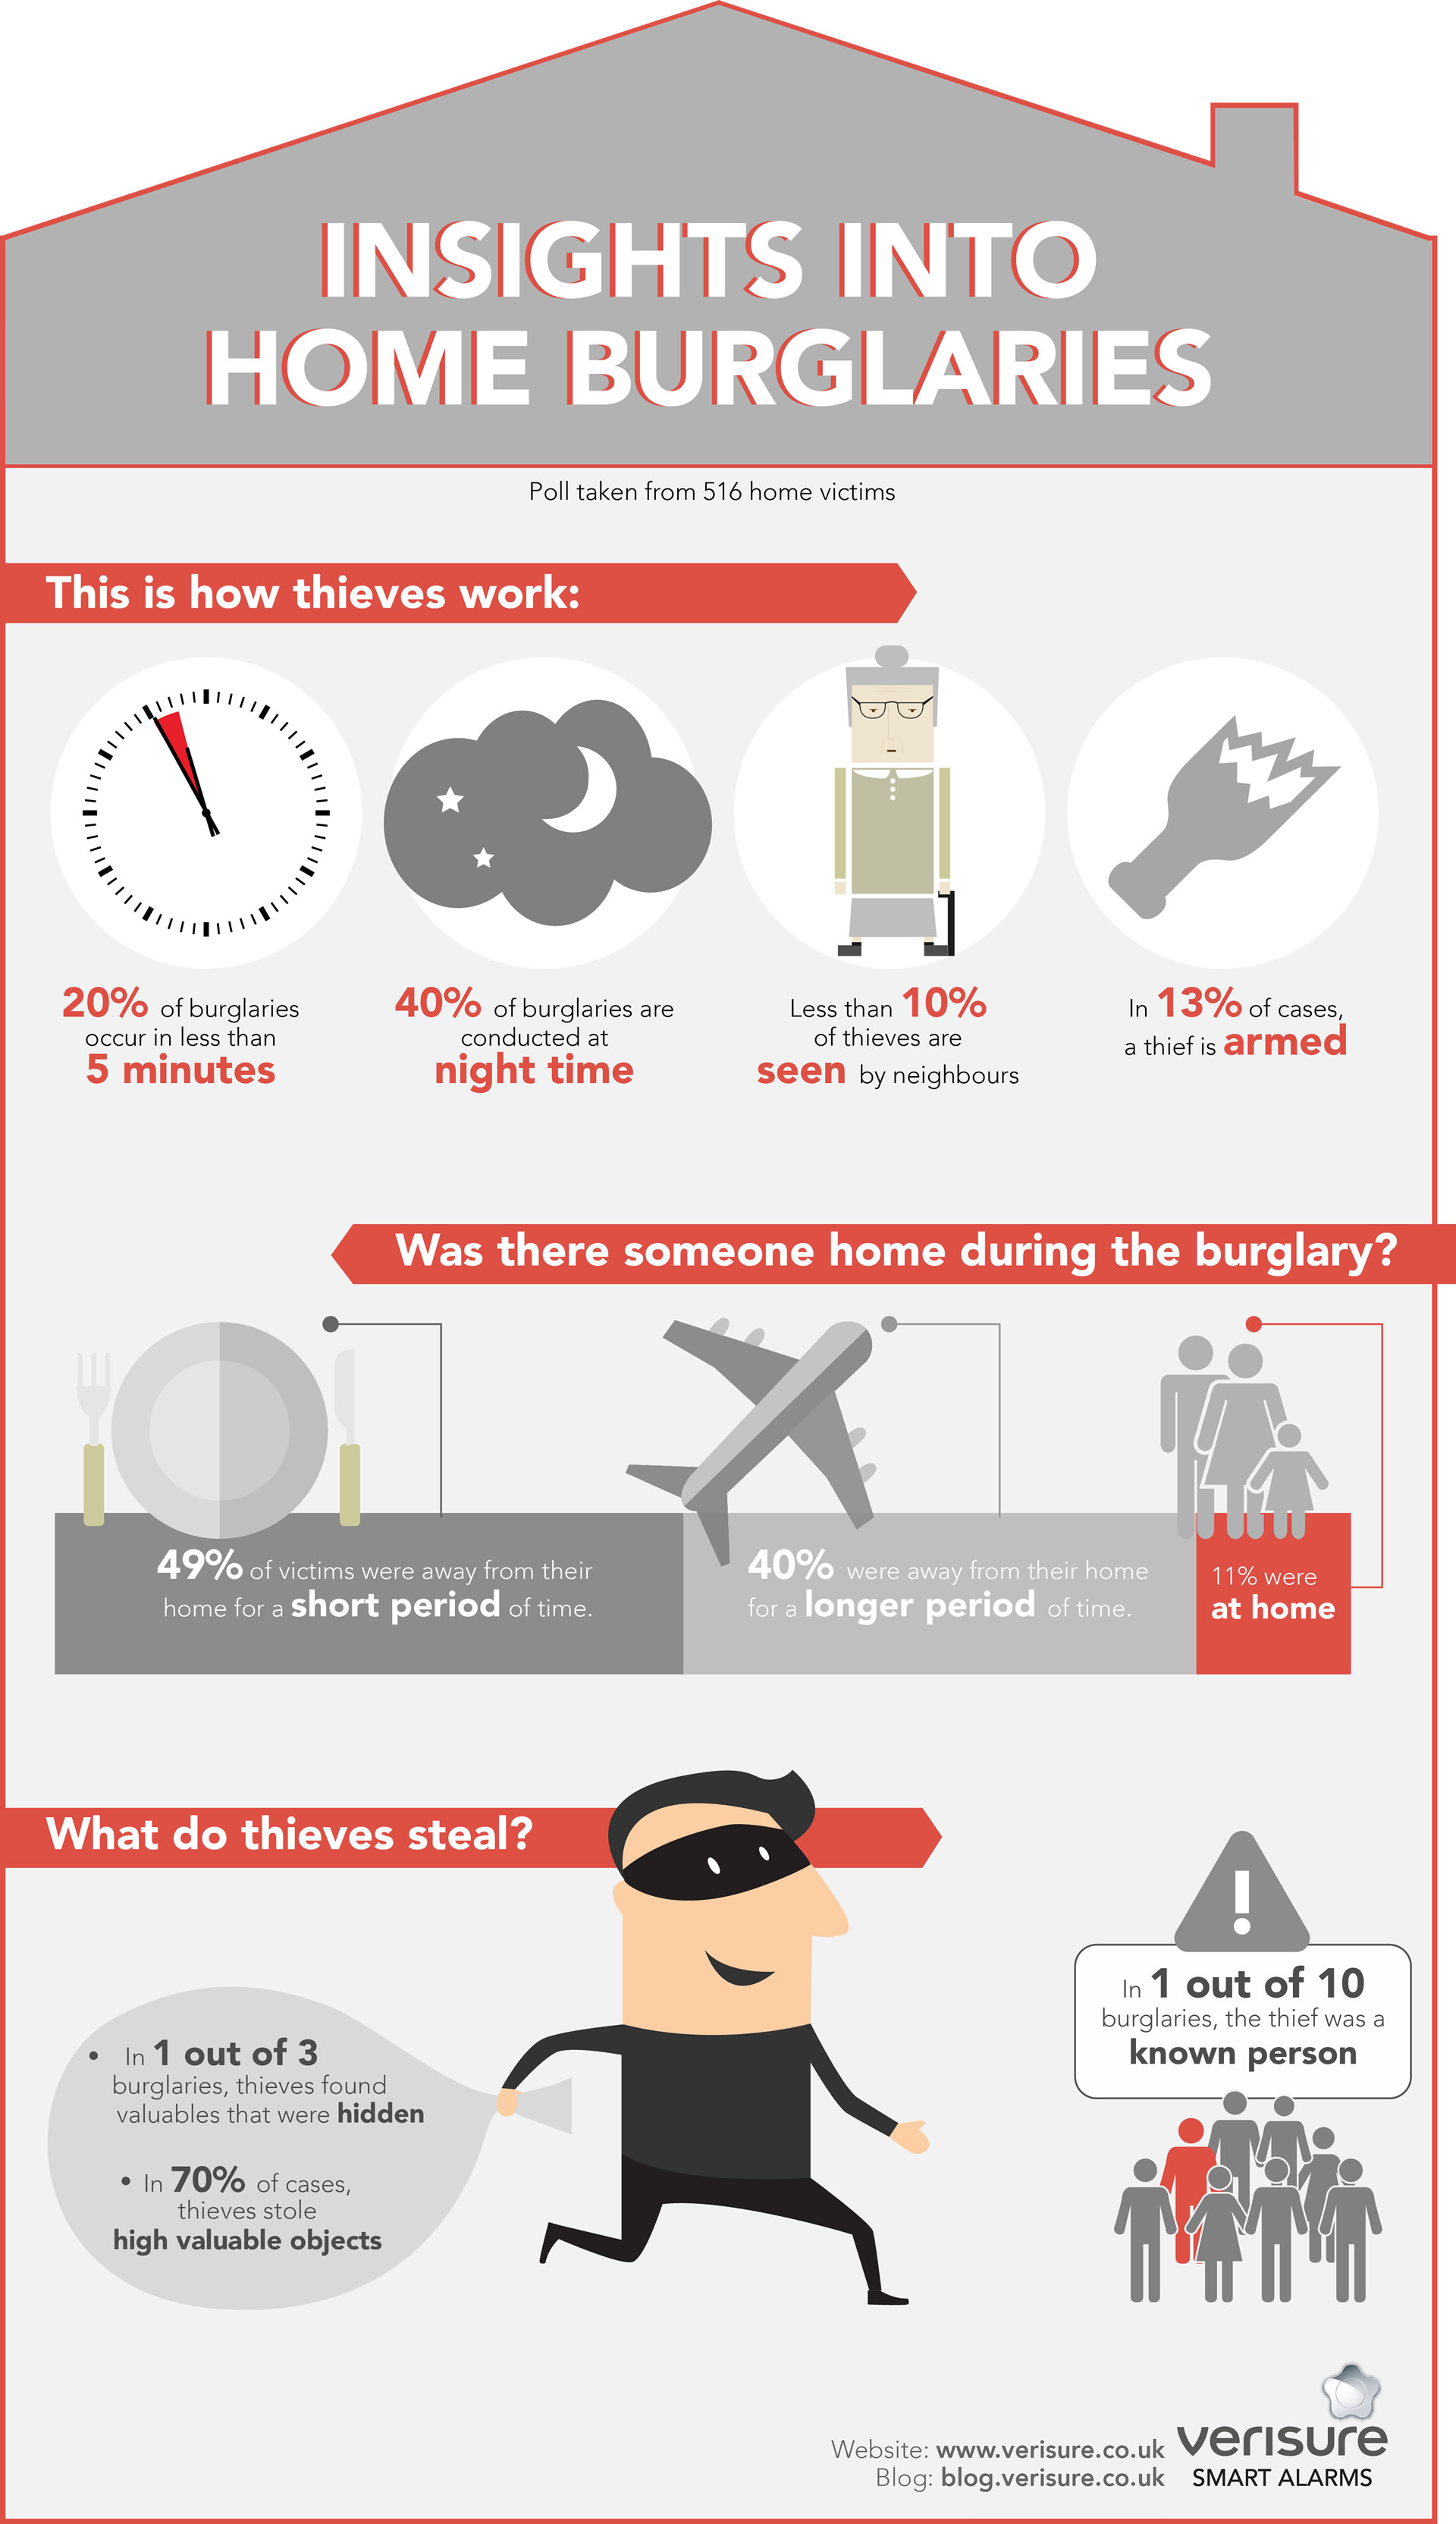 infographic showing insights into home burglaries - Verisure Smart Alarms